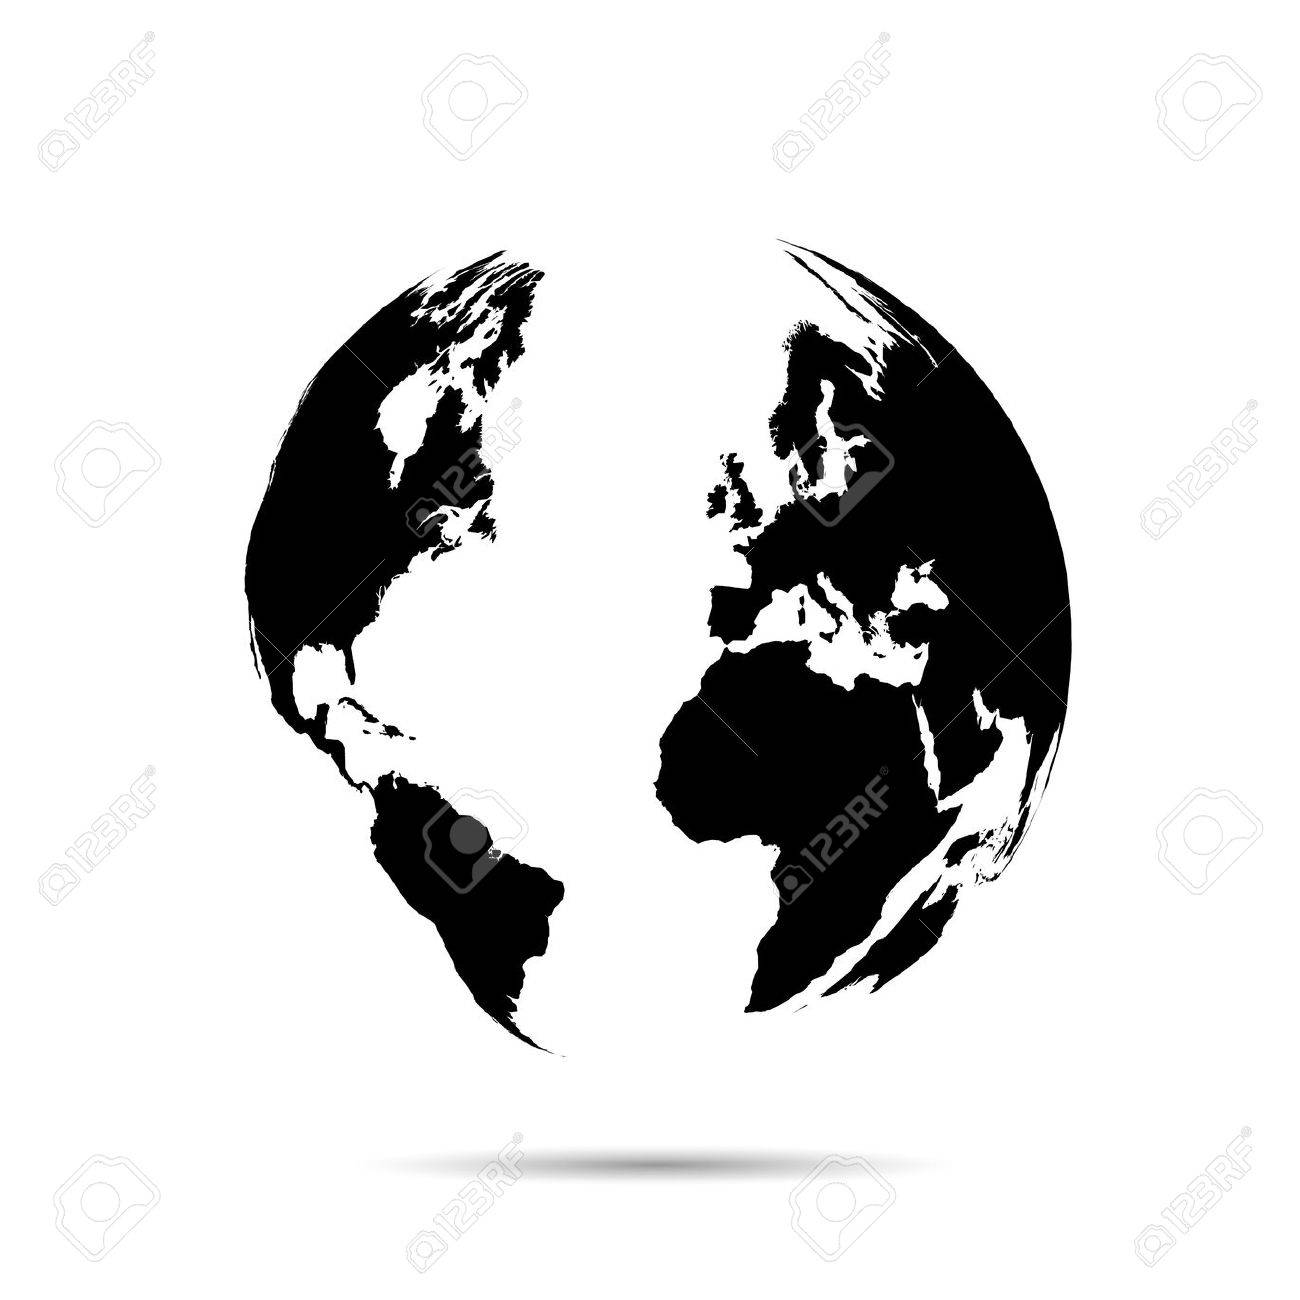 Illustration of a world map isolated on a white background illustration of a world map isolated on a white background foto de archivo 29340462 gumiabroncs Image collections